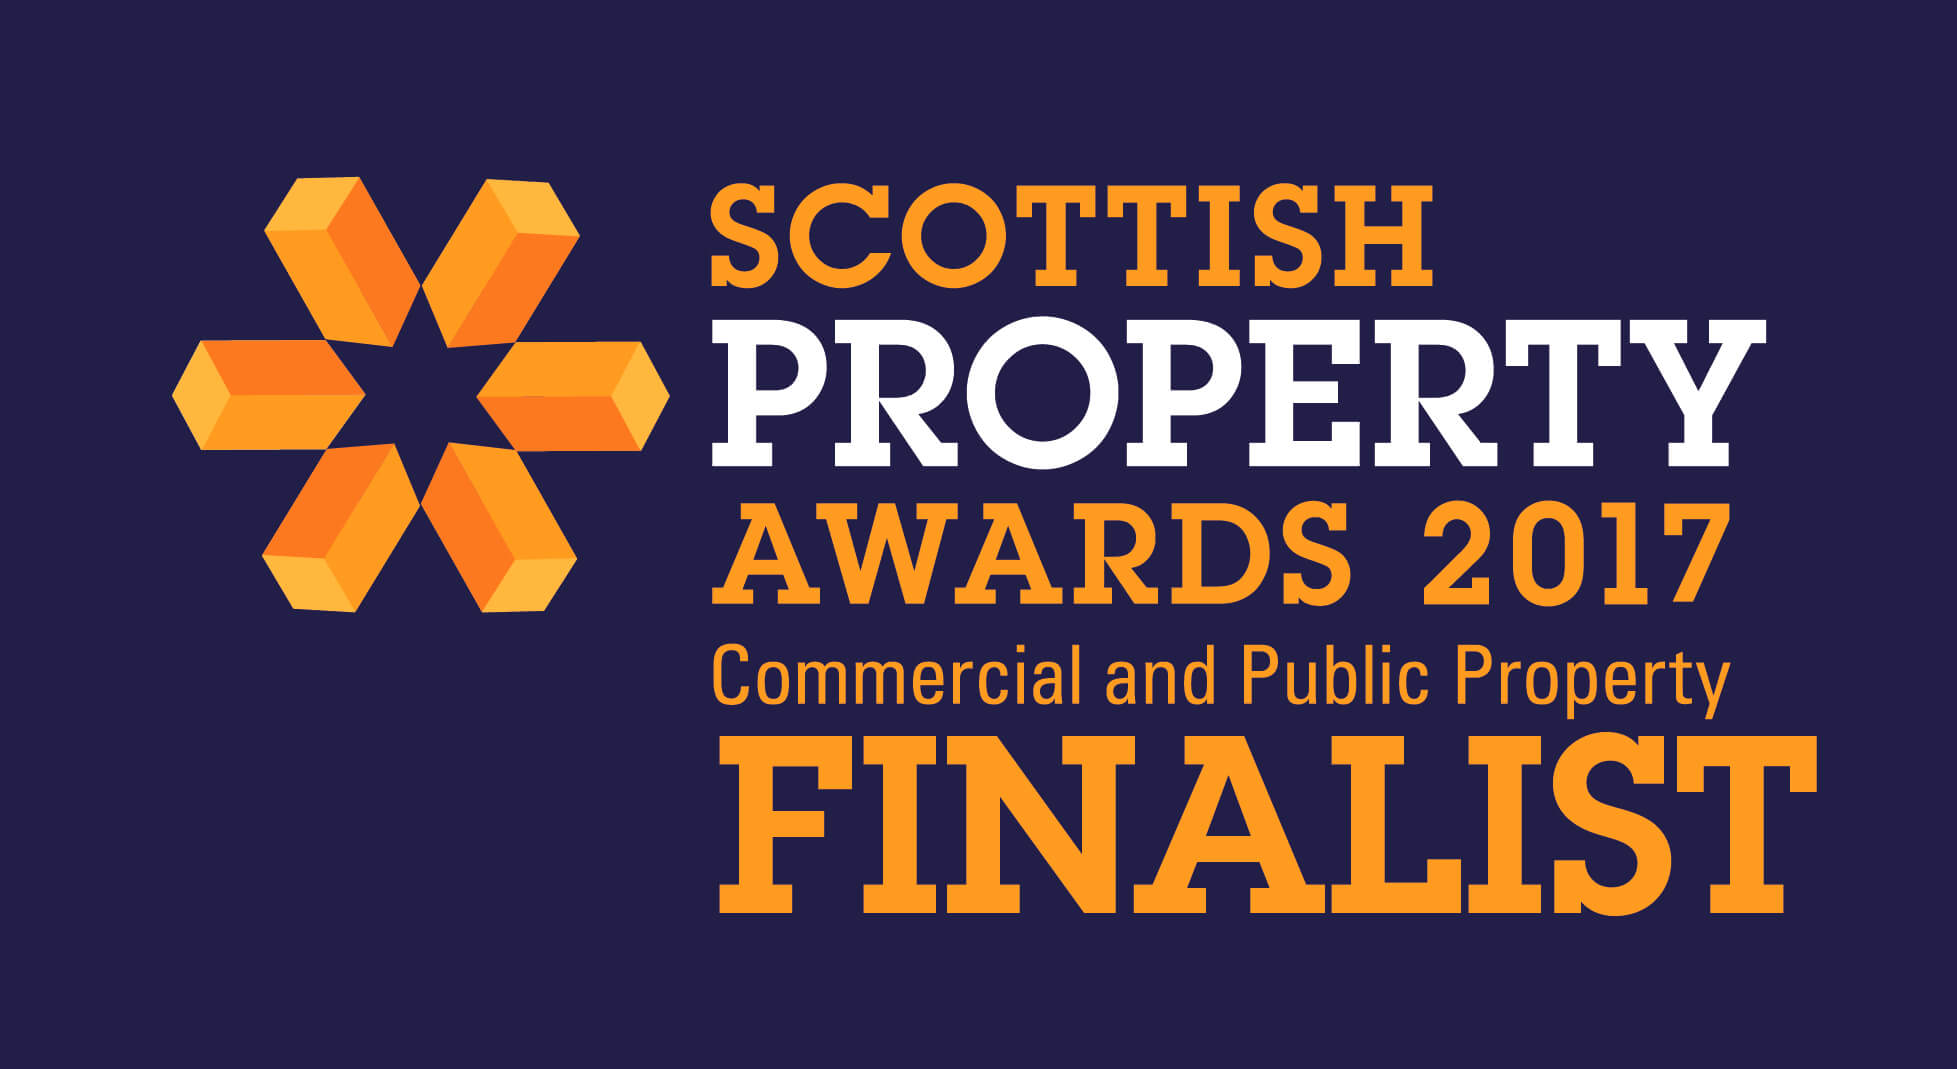 IME makes property awards shortlist again